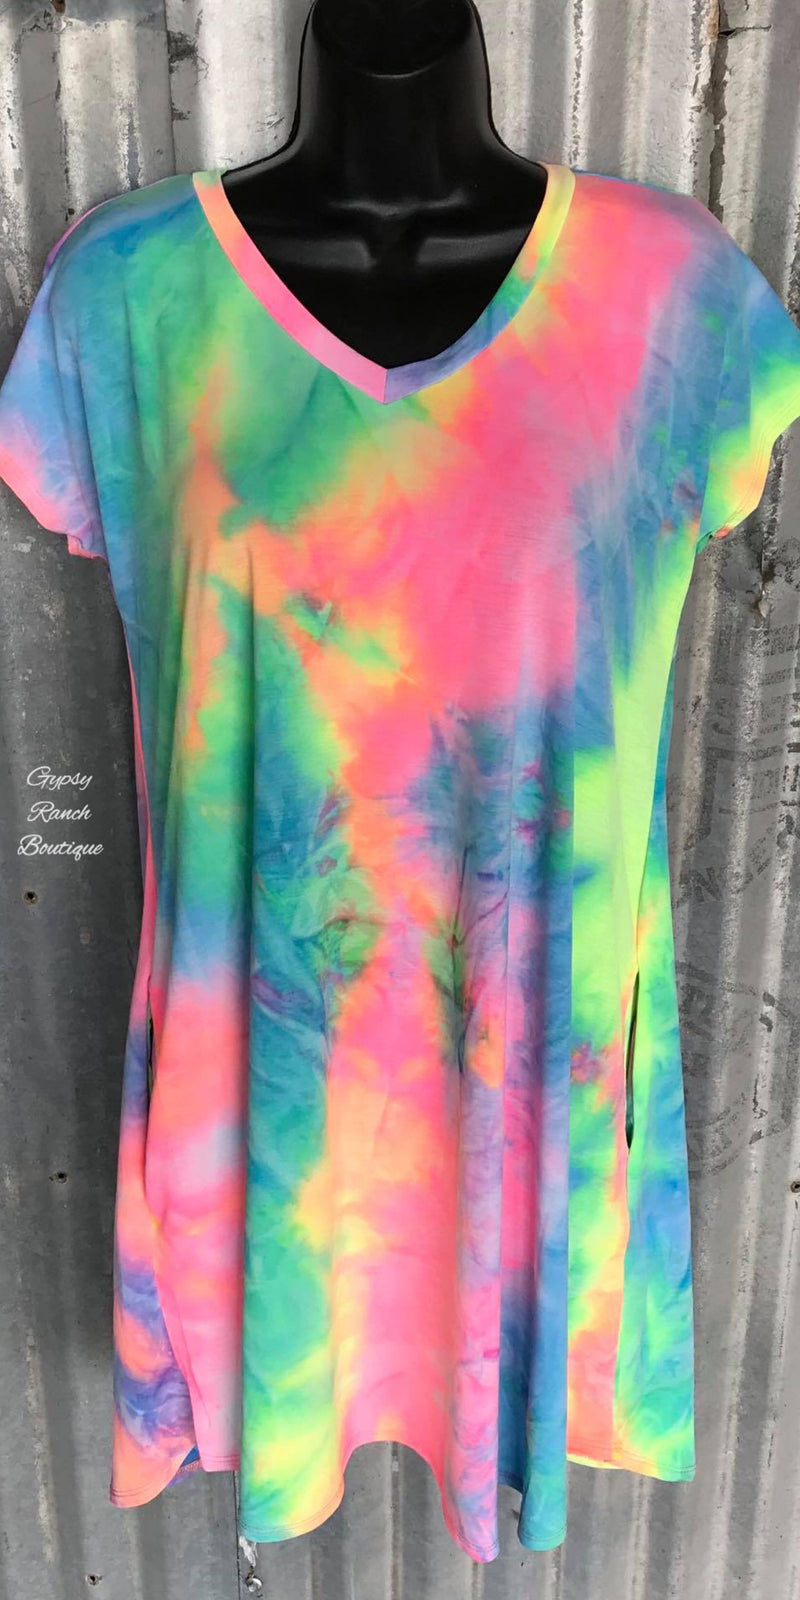 Berlin Tye Dye Tunic Dress -Also in Plus Size